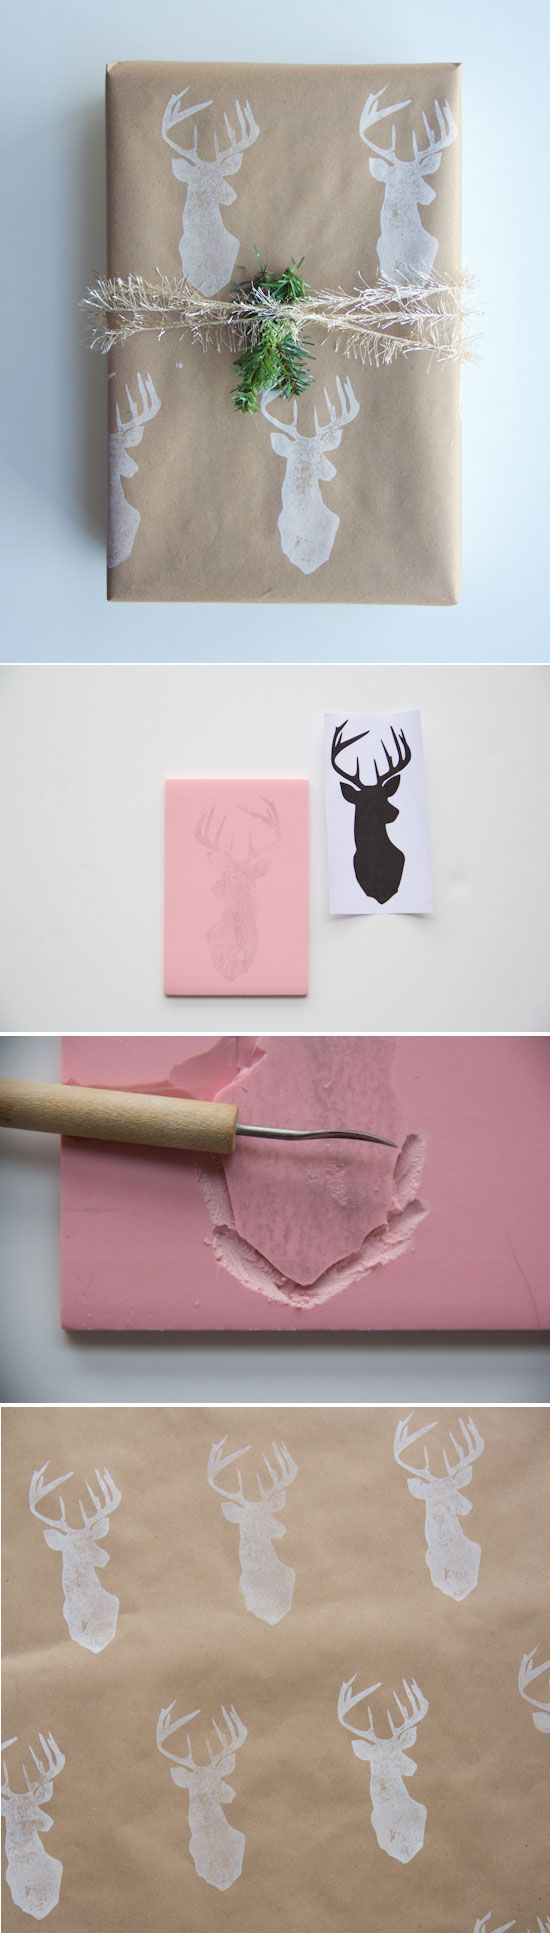 DIY : Wrapping Paper + Stamp Tutorial by @Chelsea Rose Rose Costa for Poppytalk  Such a cute idea!  Was planning to do silver on kraft paper anyway but just had to order that stamp from deer head stamp from etsy!